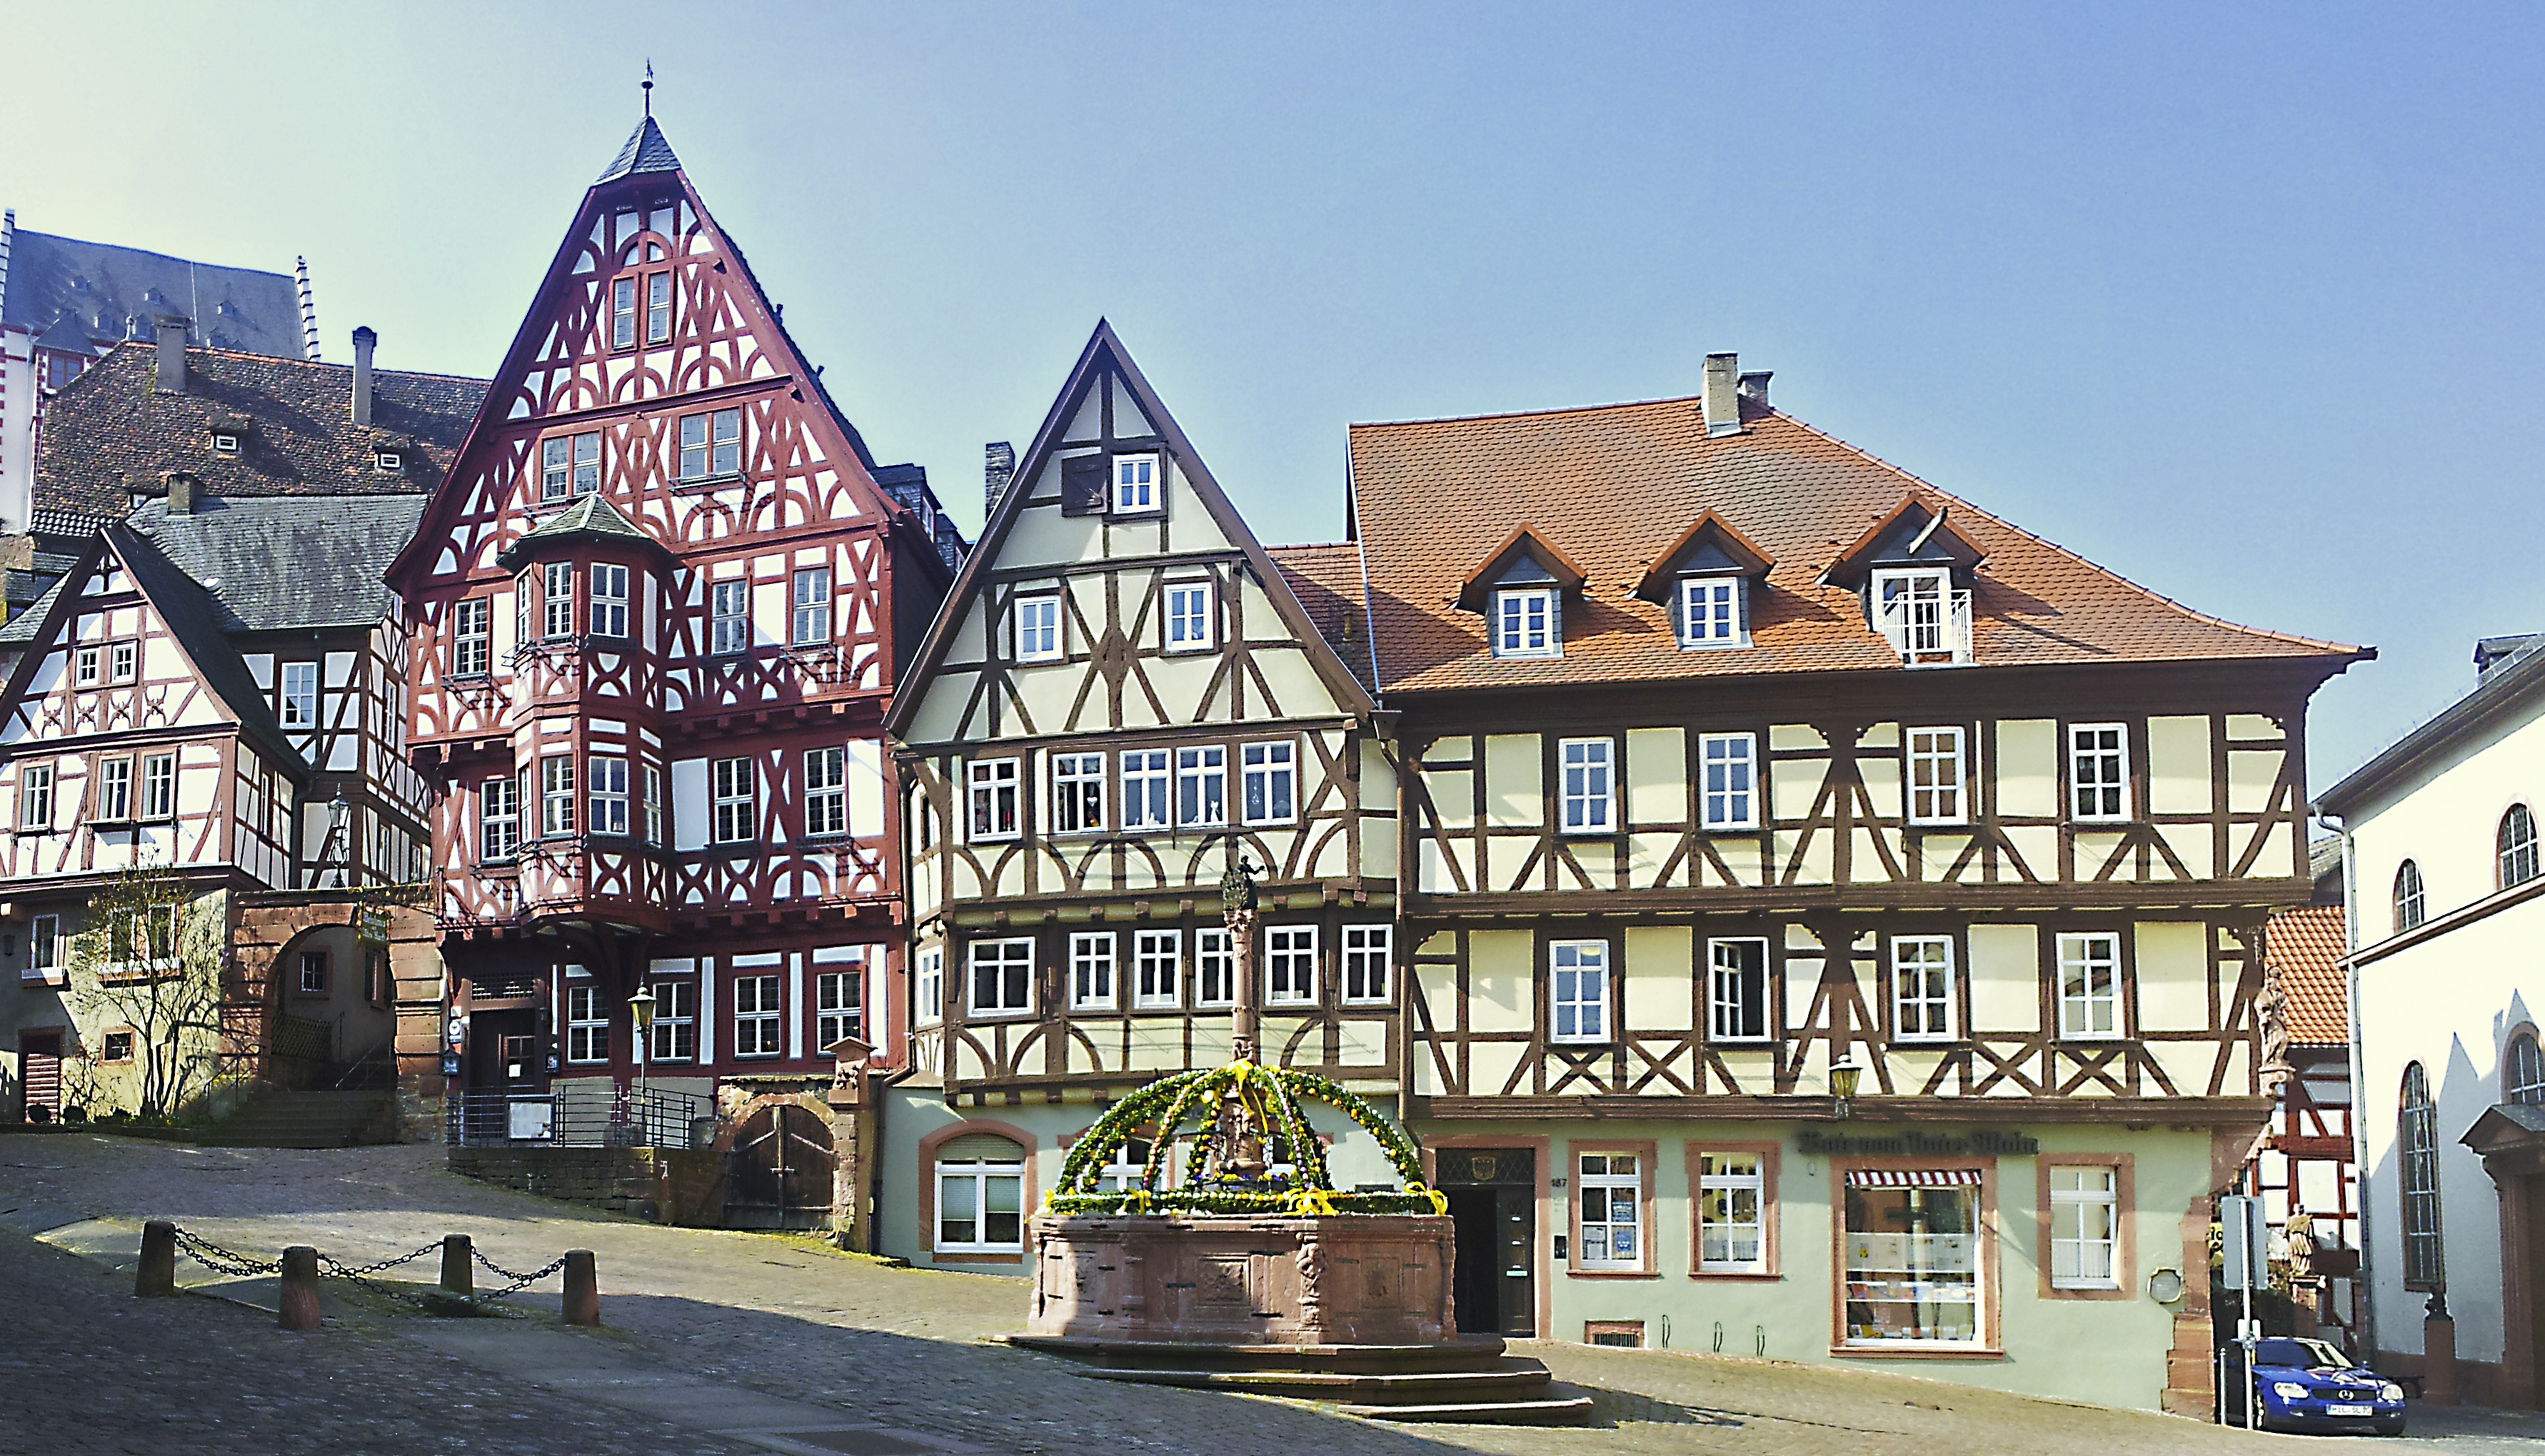 Https Commons Wikimedia Org Wiki File Marktplatz In Miltenberg Am Main Jpg